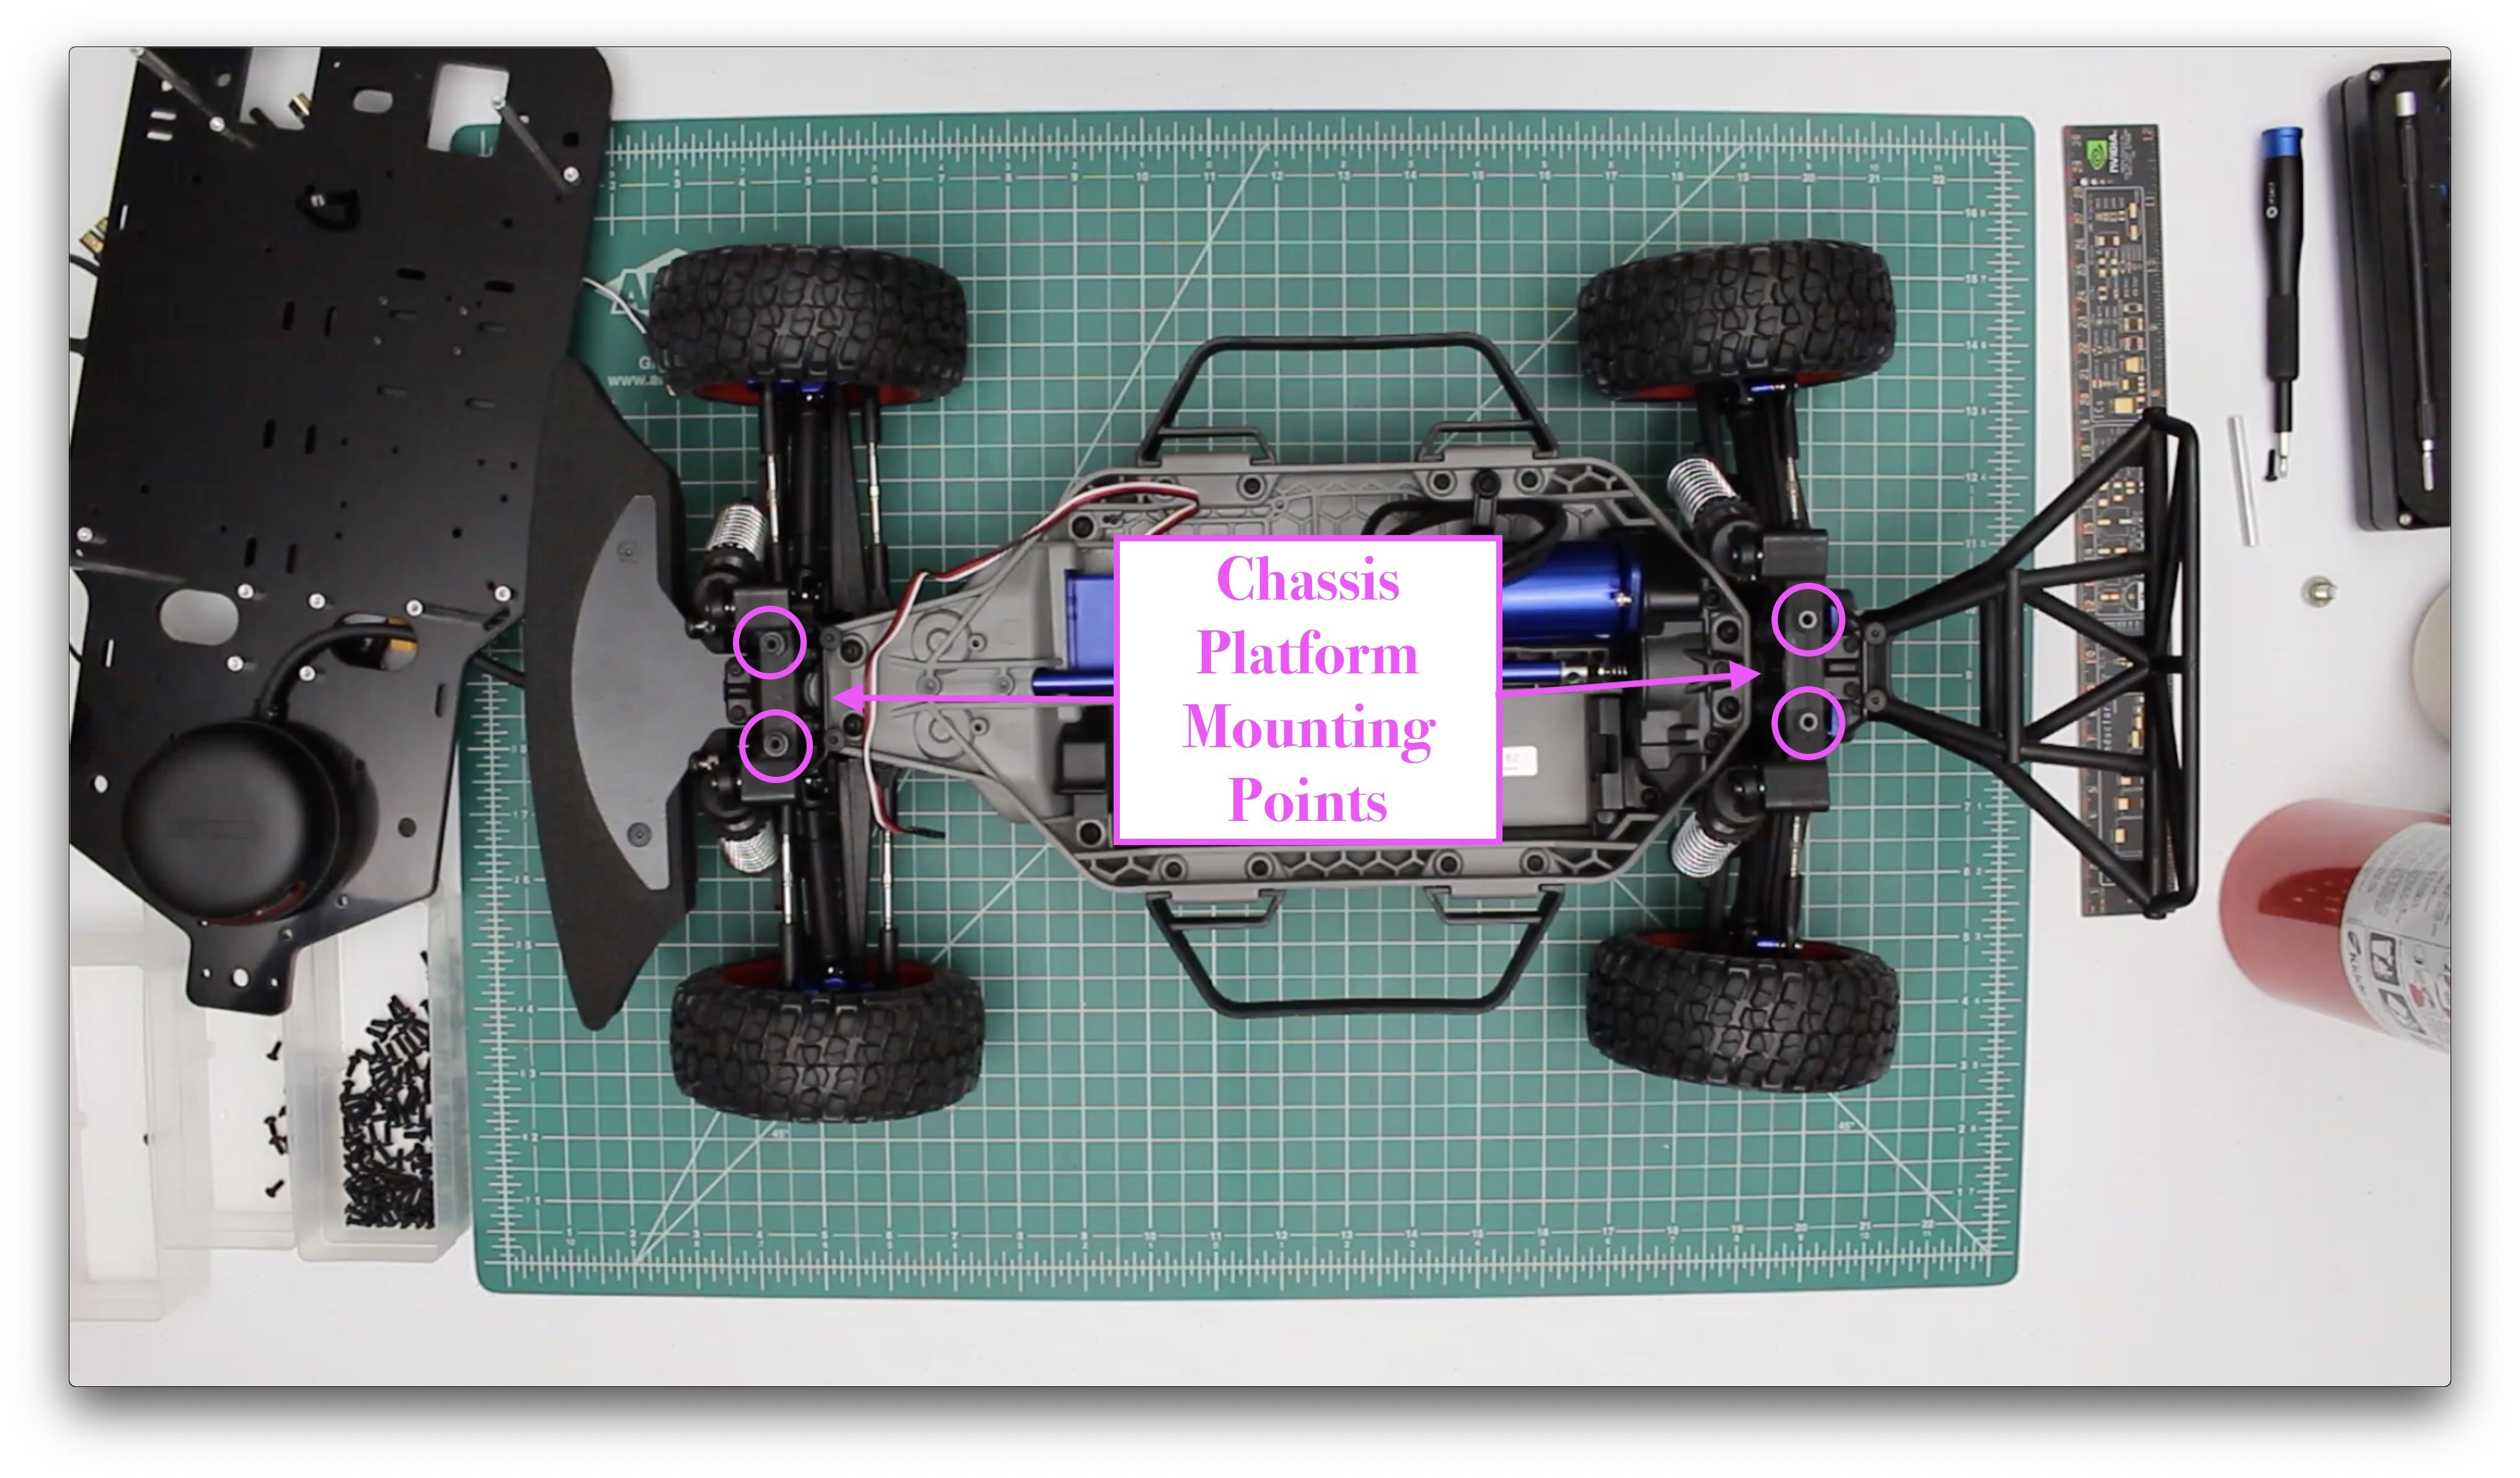 Chassis Mounting Points